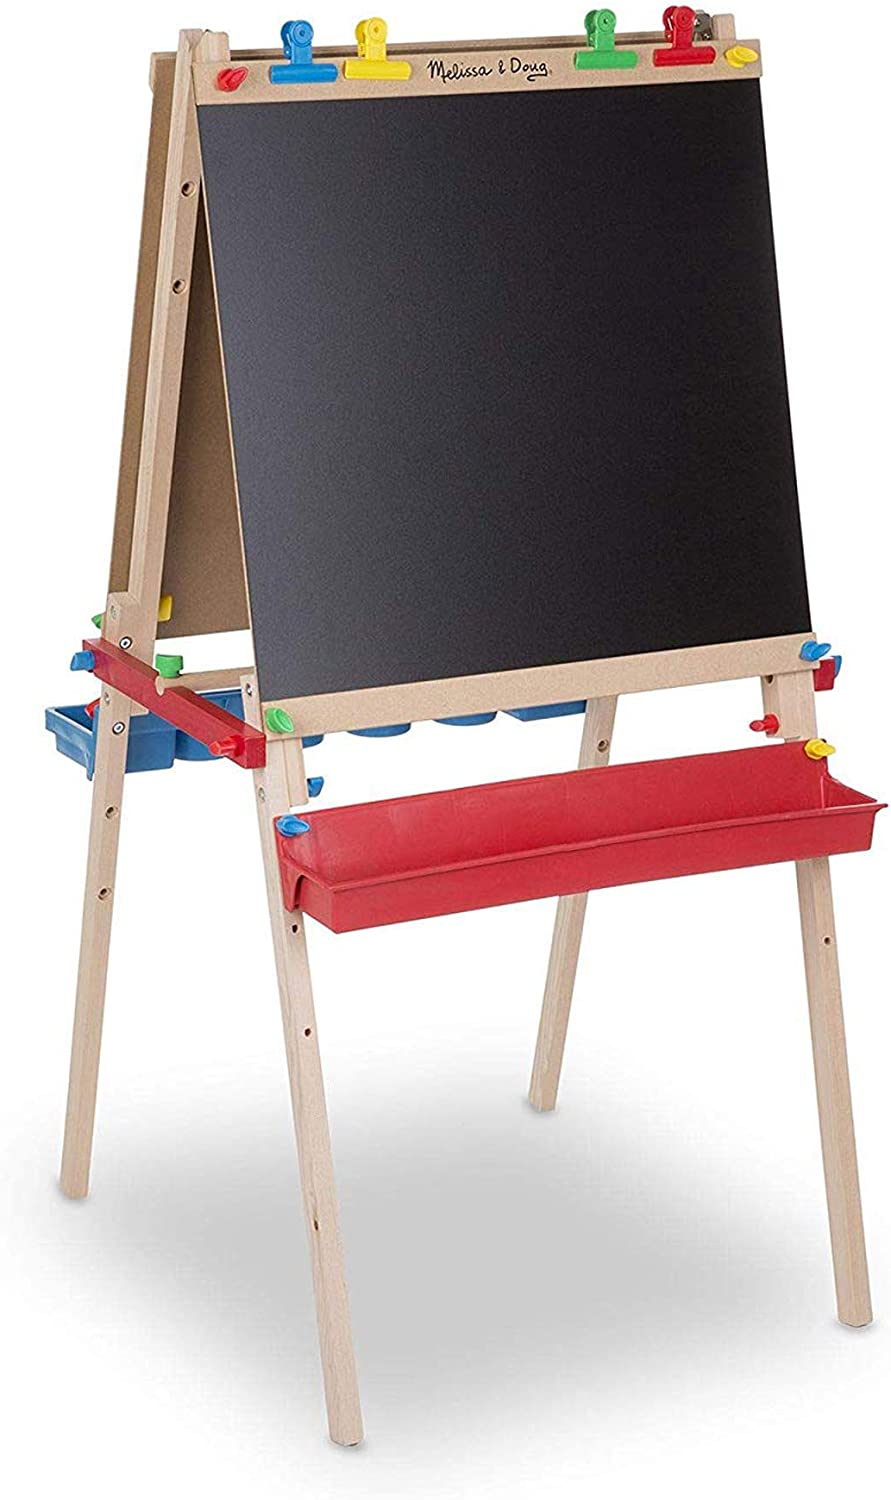 Top 9 Best Easel For Toddlers & Kids (2020 Reviews) 5